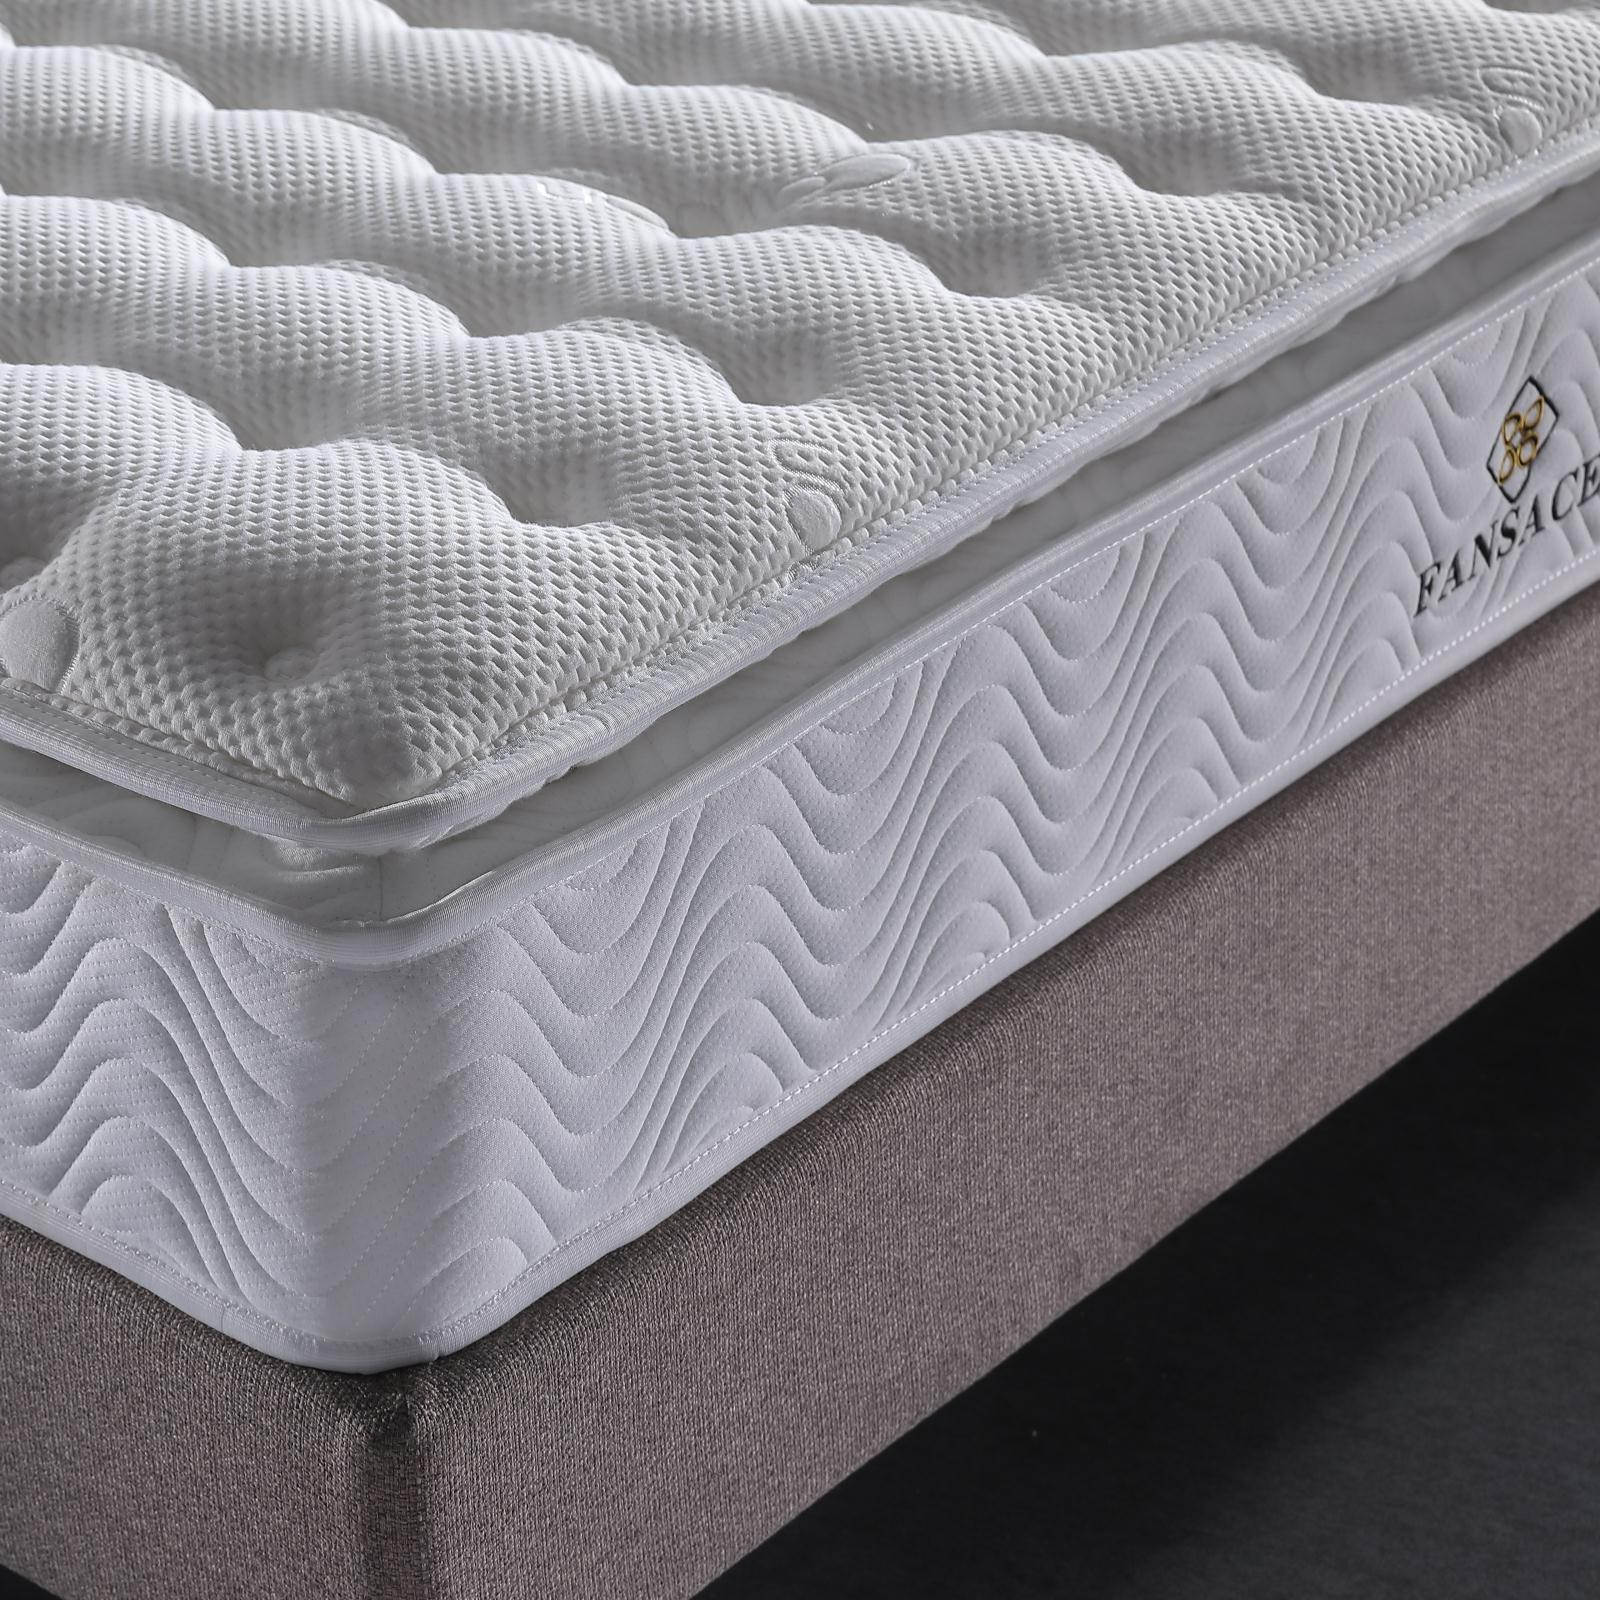 Fansace 32BA-01 Best Hotel Mattress Supplier From China Manufacturer